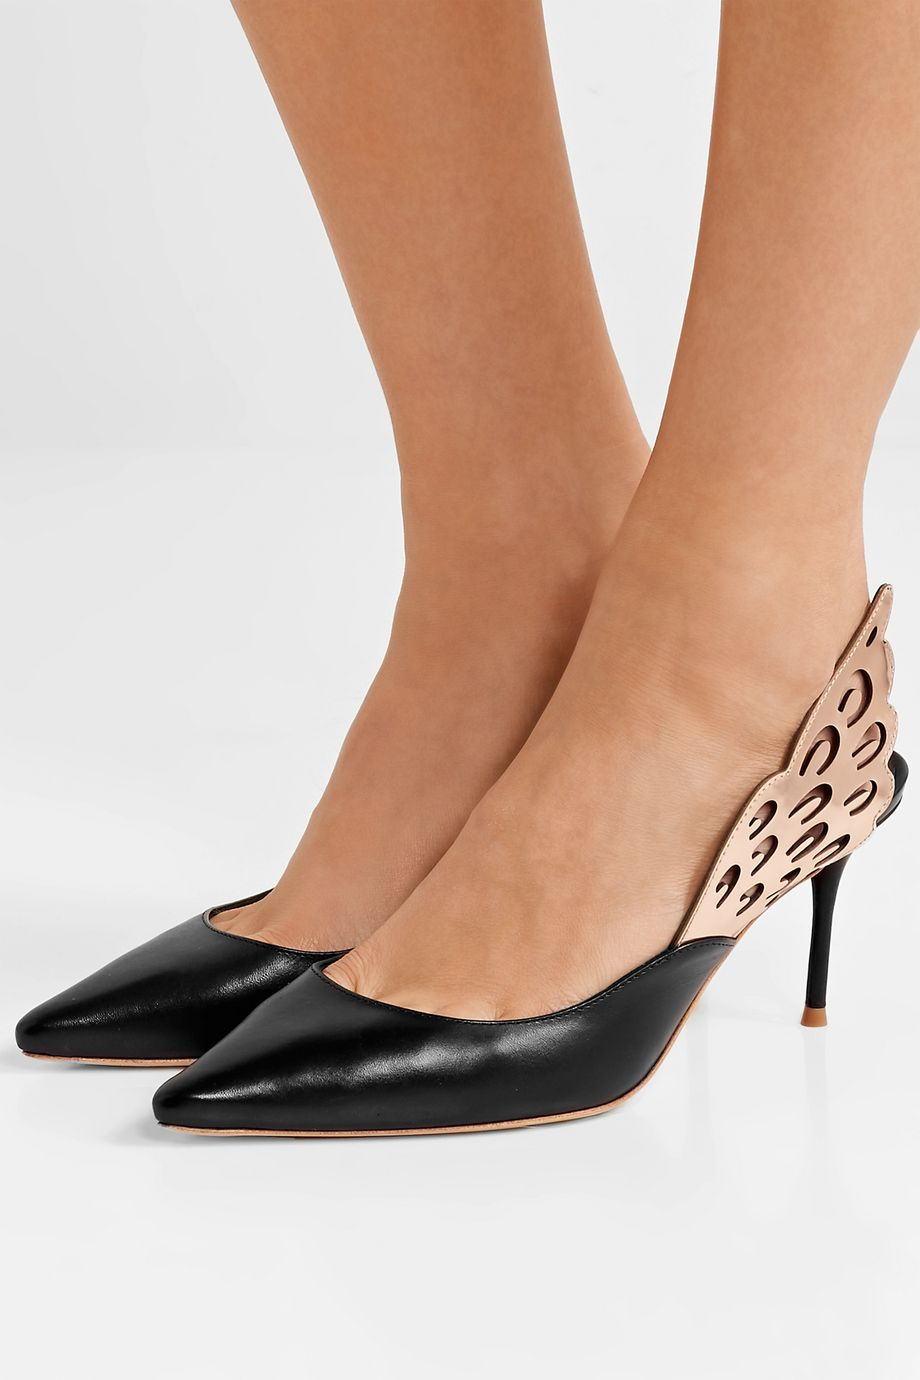 Sophia Webster Angelo metallic and smooth leather slingback pumps